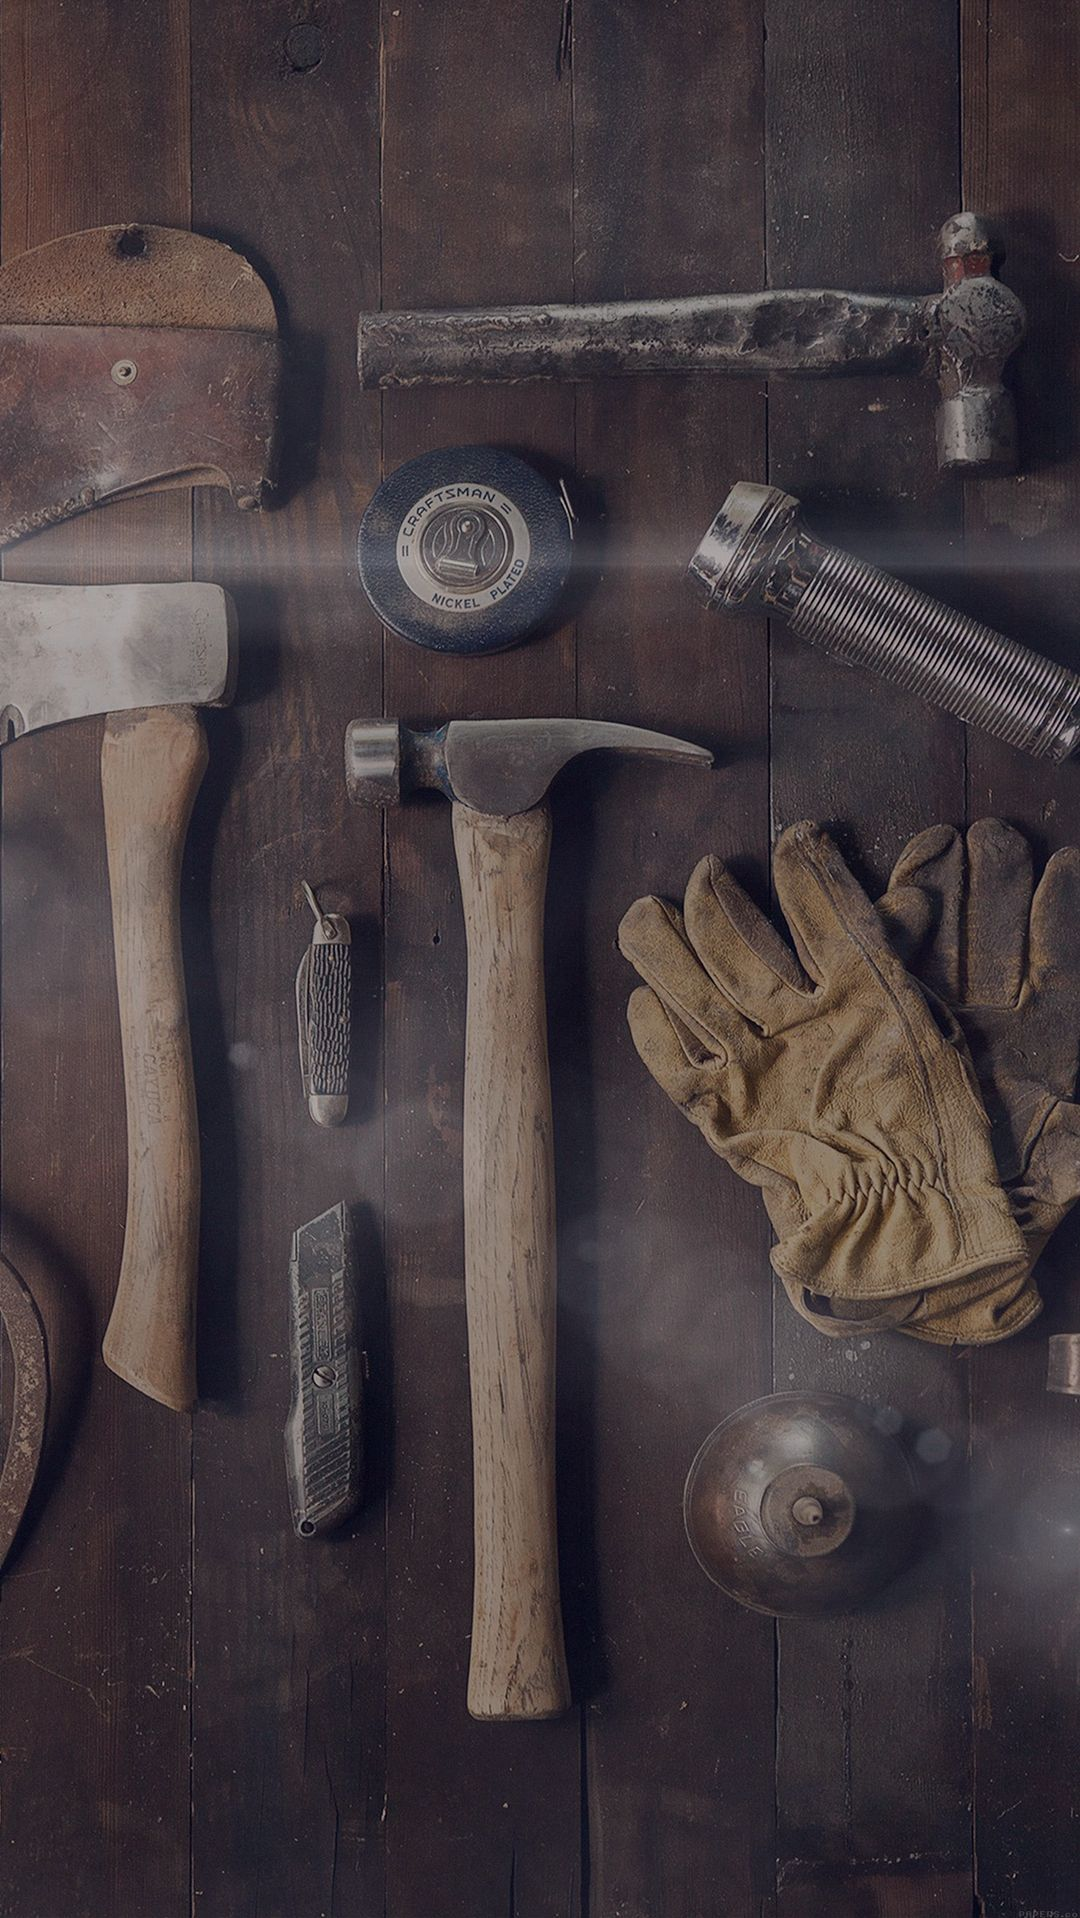 Woodworker Workshop Tools IPhone 8 Wallpaper